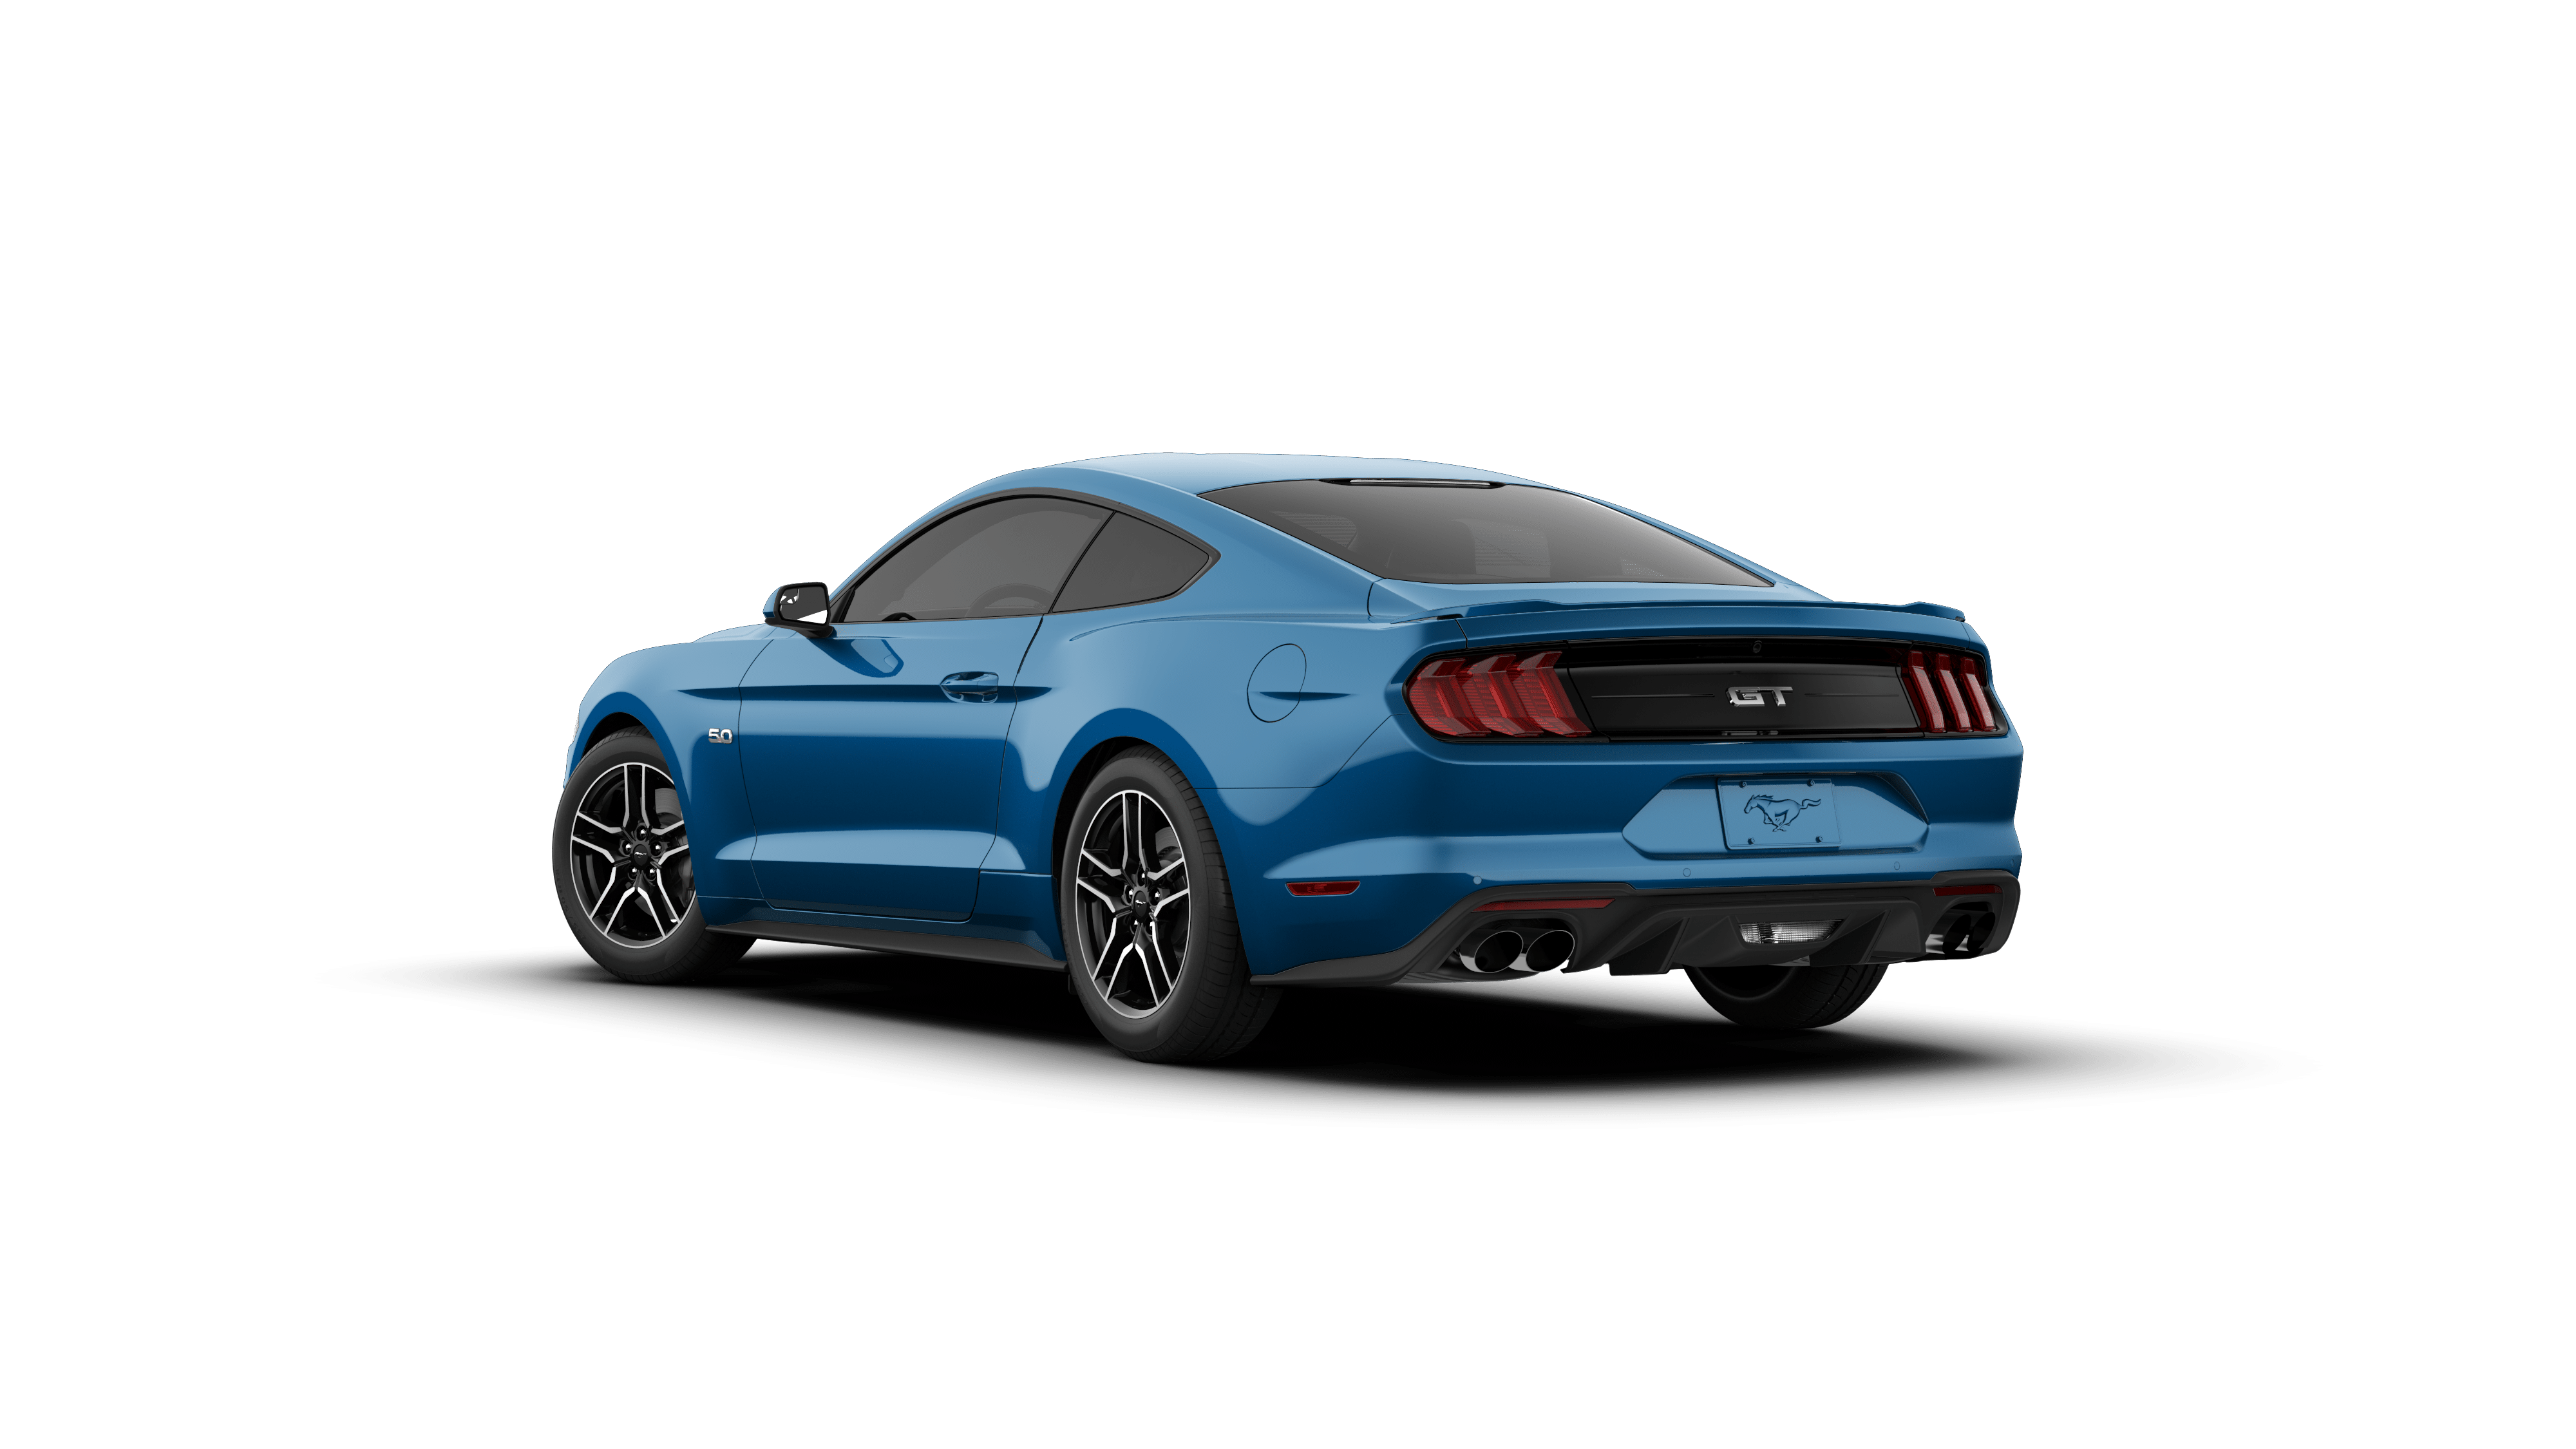 Ford Dealership Pittsburgh Pa >> 2019 Ford Mustang for sale in Pittsburgh - 1FA6P8CFXK5117598 - Shults Ford Harmarville